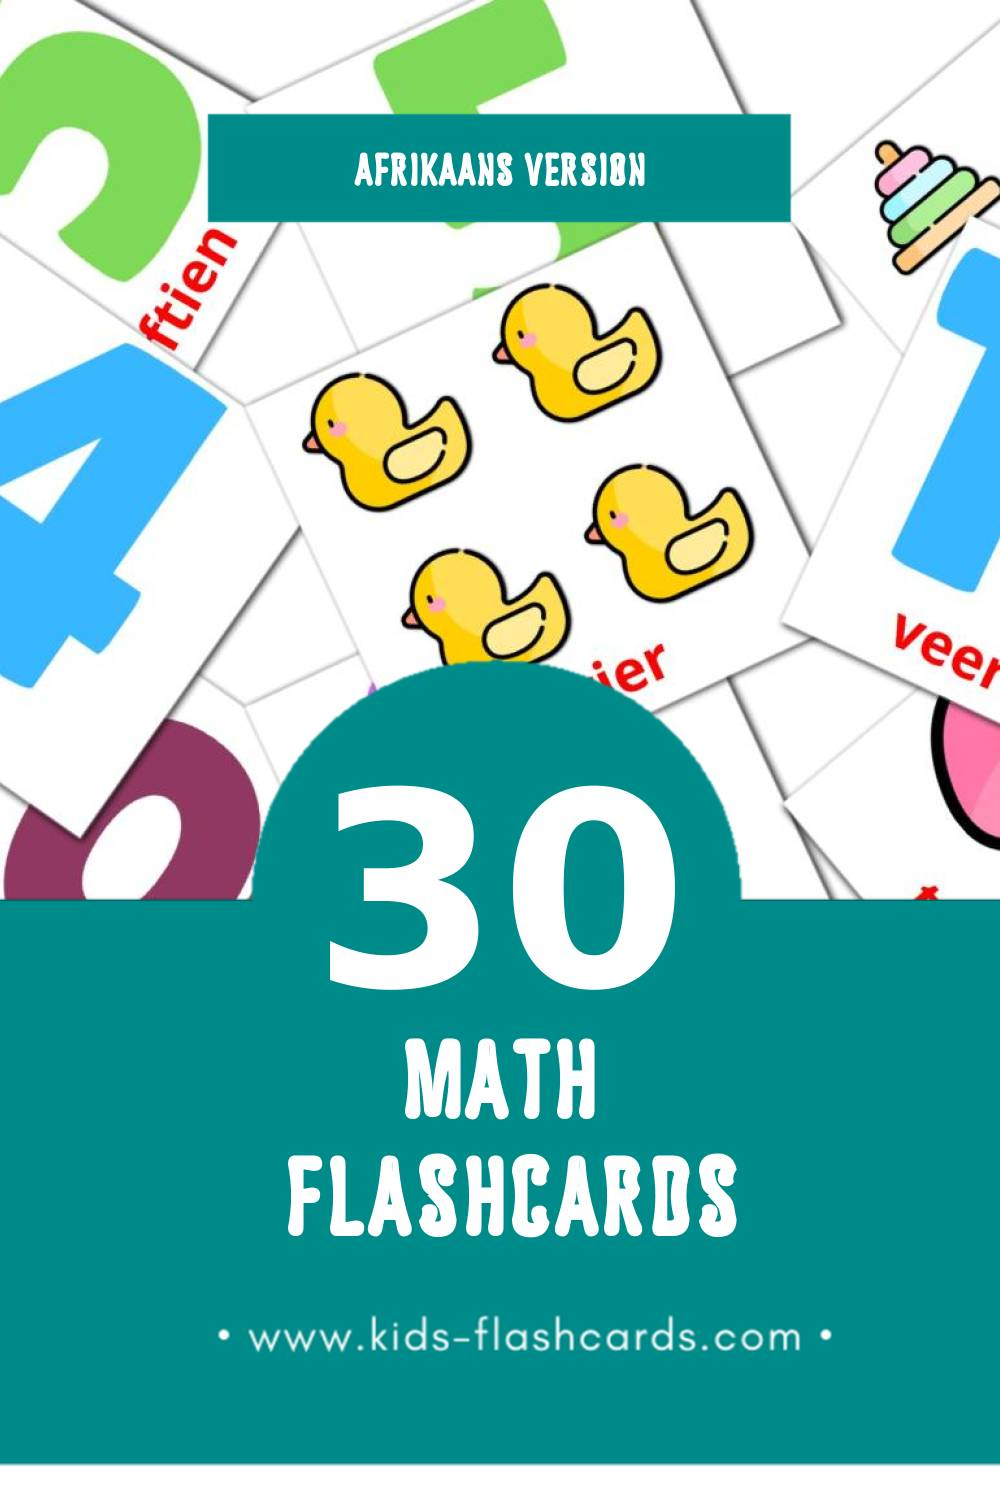 Visual Wiskunde Flashcards for Toddlers (30 cards in Afrikaans)